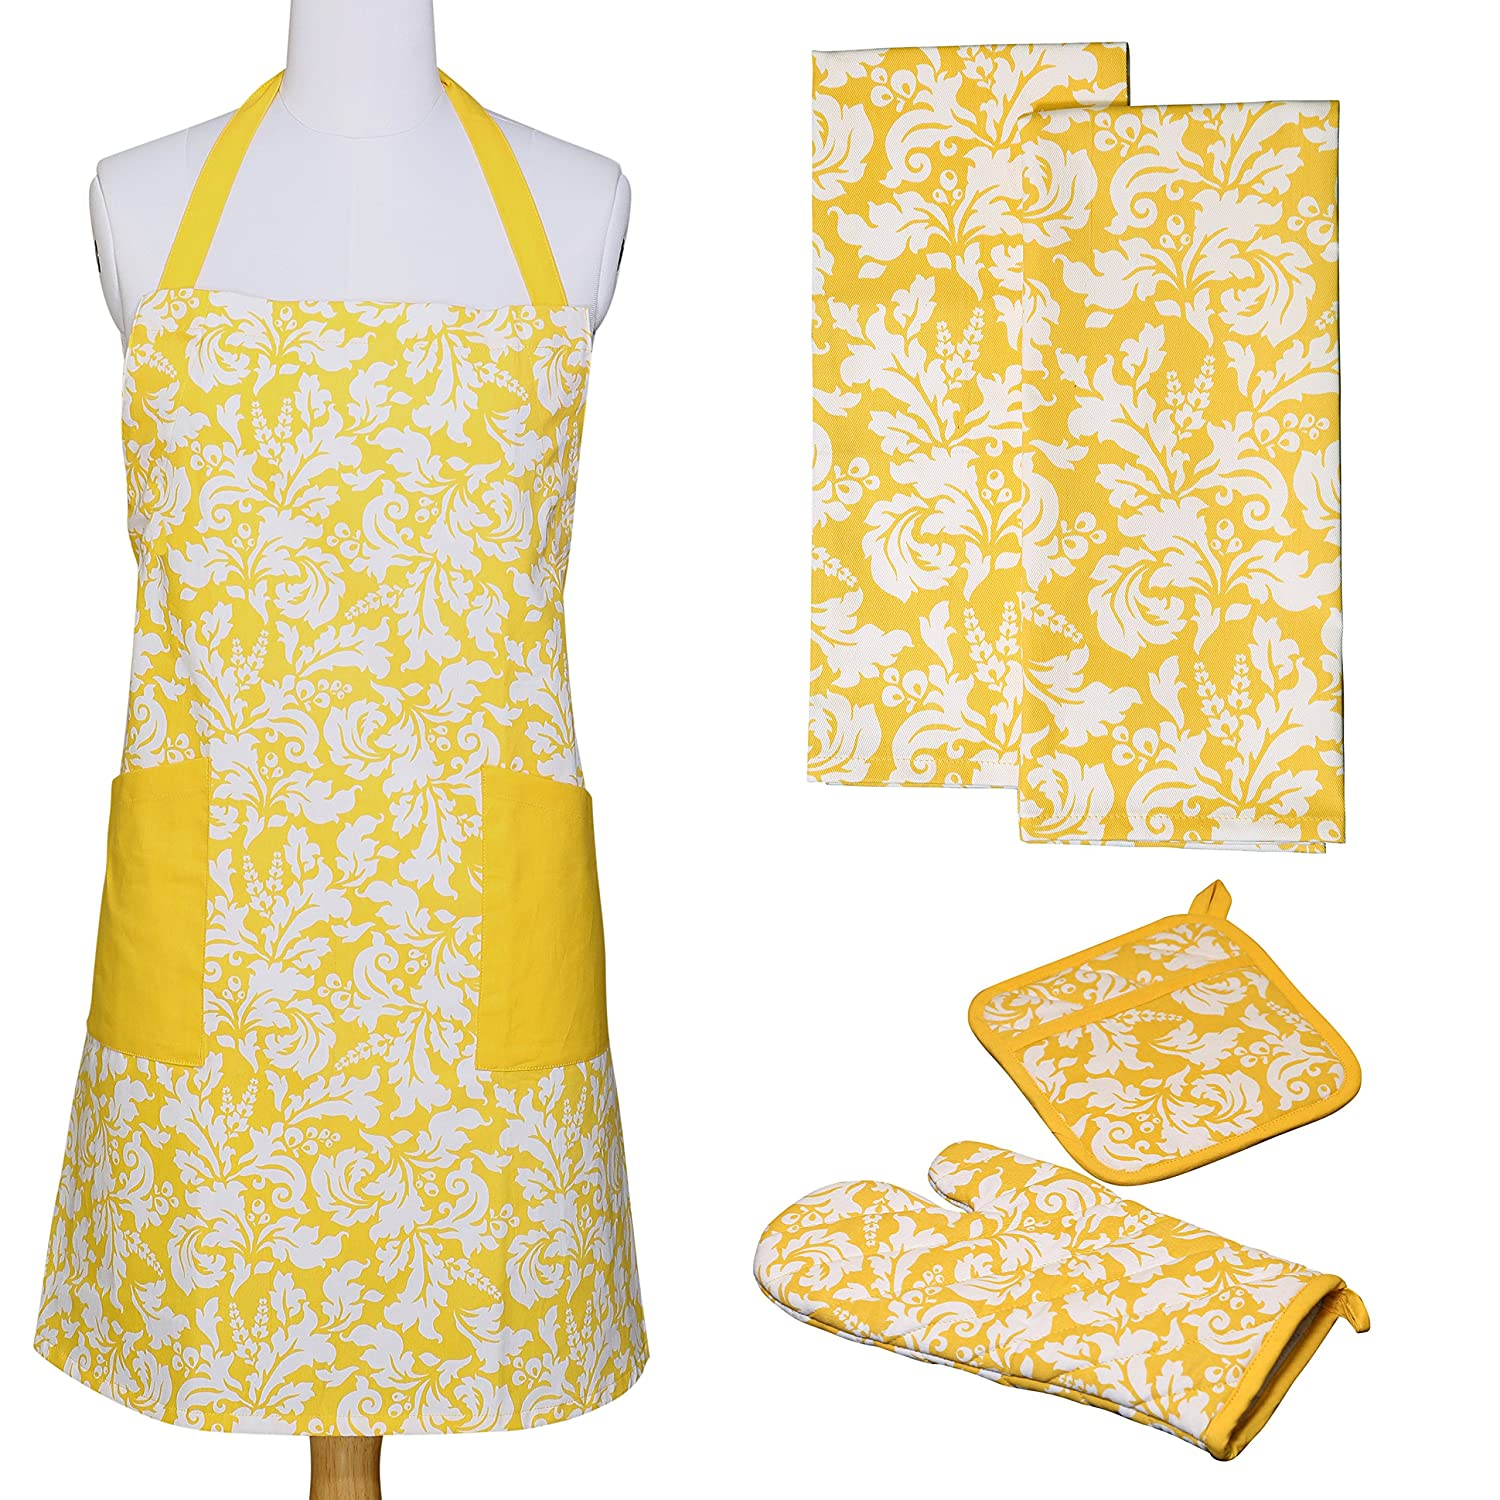 Yourtablecloth Kitchen Gift Set-1 Kitchen Apron, an Oven Mitt & A Pot Holder-2 Kitchen Dish Towels or Tea Towels-Ideal Cooking Gifts or Gift Ideas for Chefs-Suitable for Men & Women-Marigold